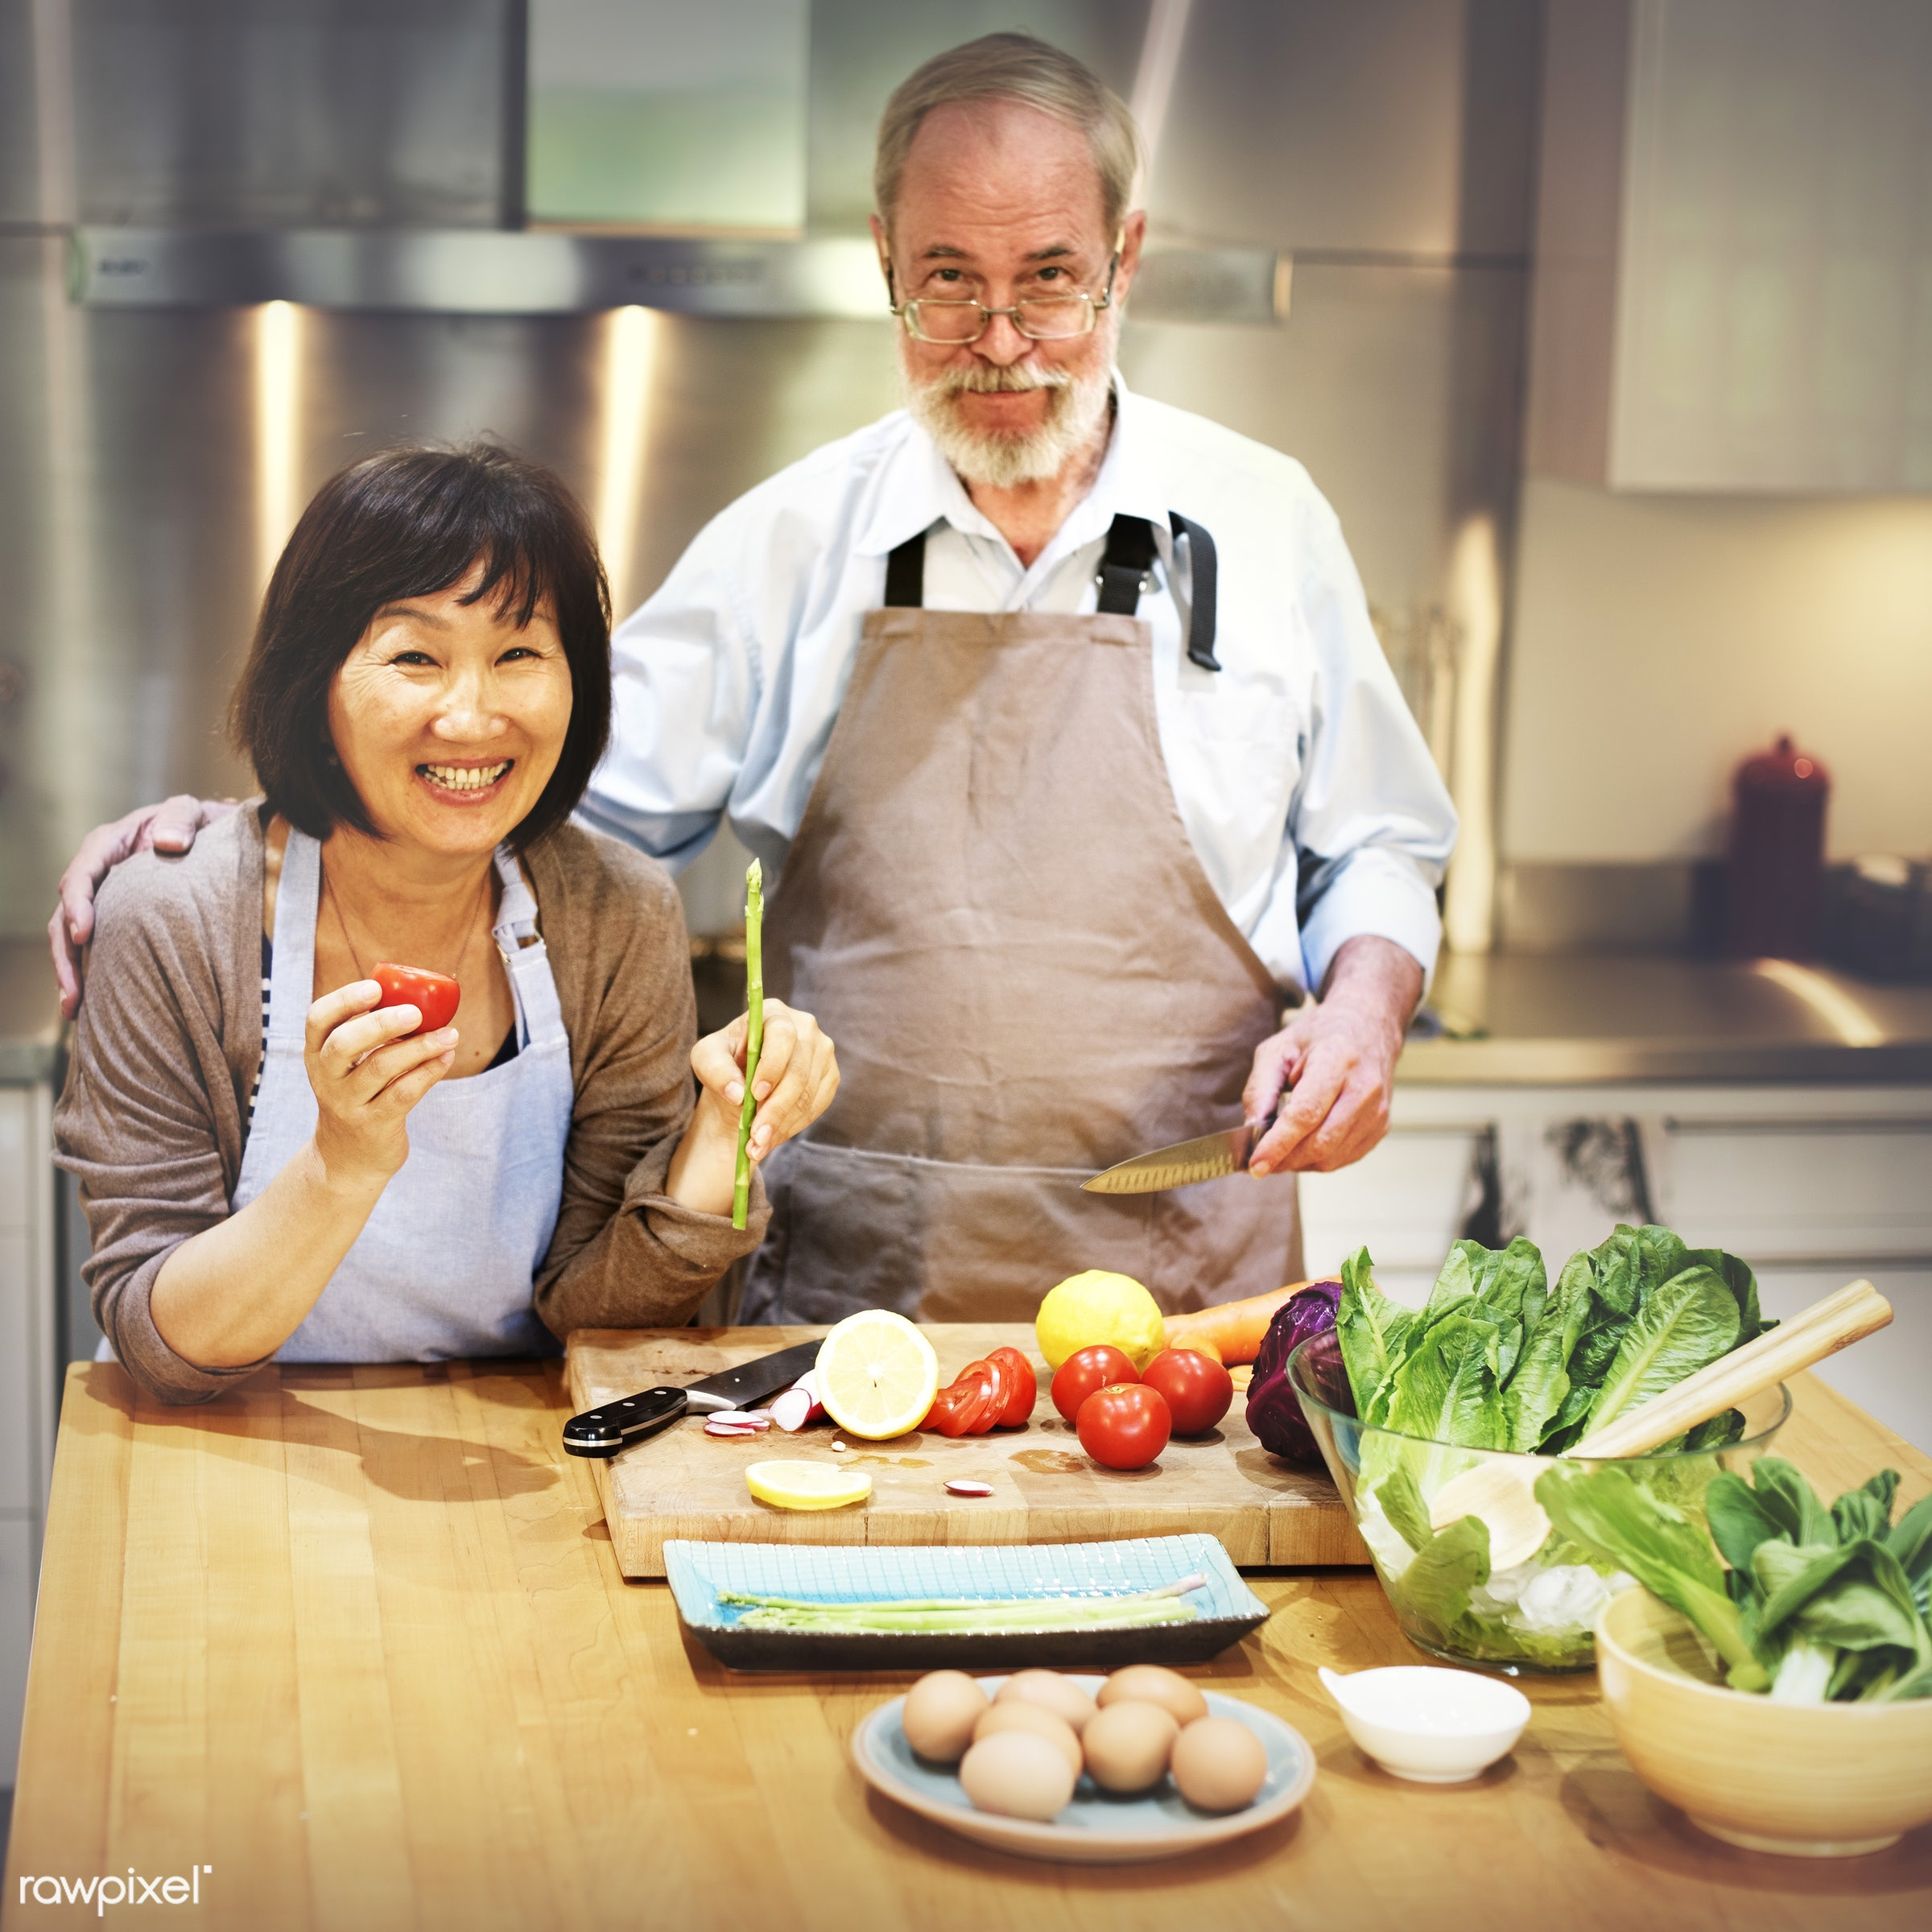 older, activity, apron, bonding, breakfast, casual, cheerful, chef, cookery, cookhouse, cooking, couple, cuisine, culinary,...